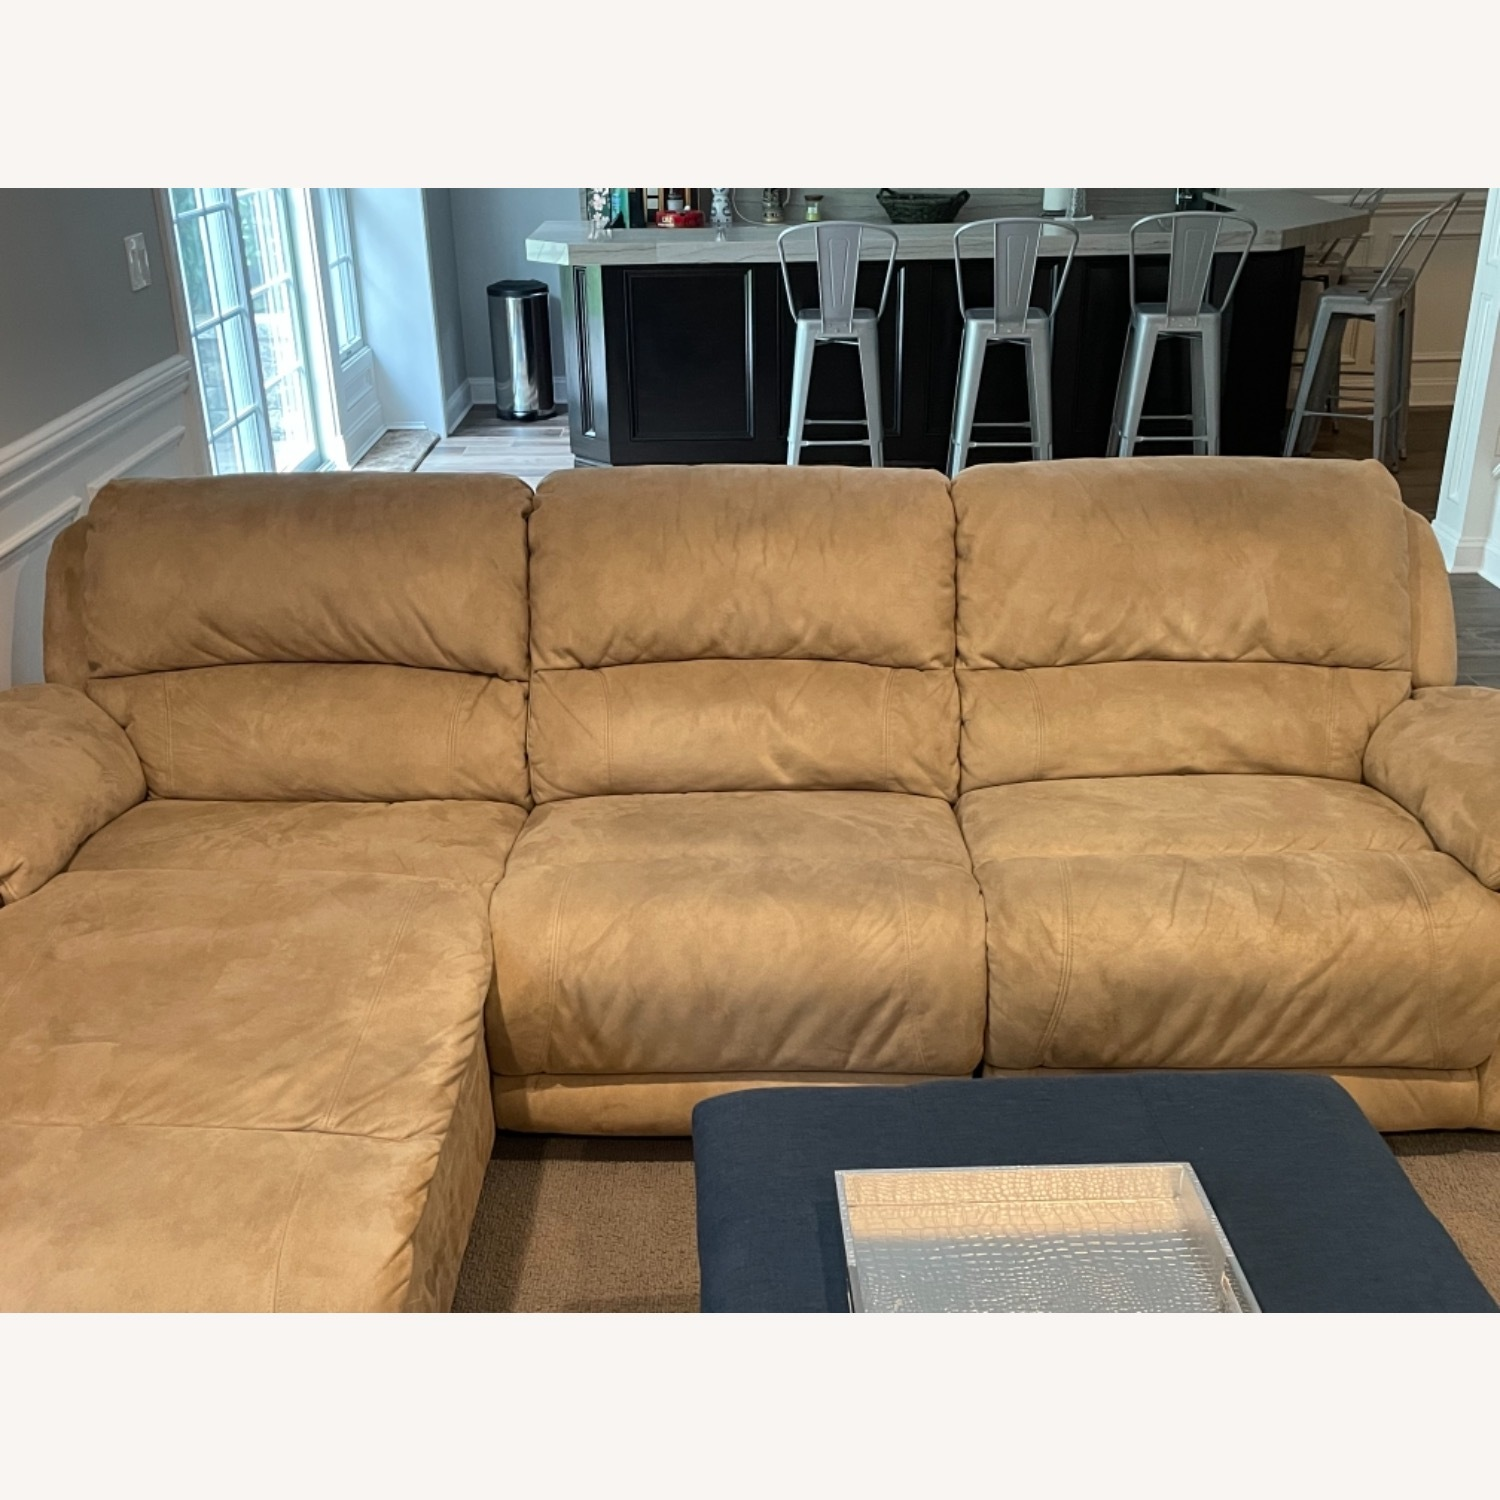 Raymour & Flanigan Reclining Sofa with Chaise - image-1